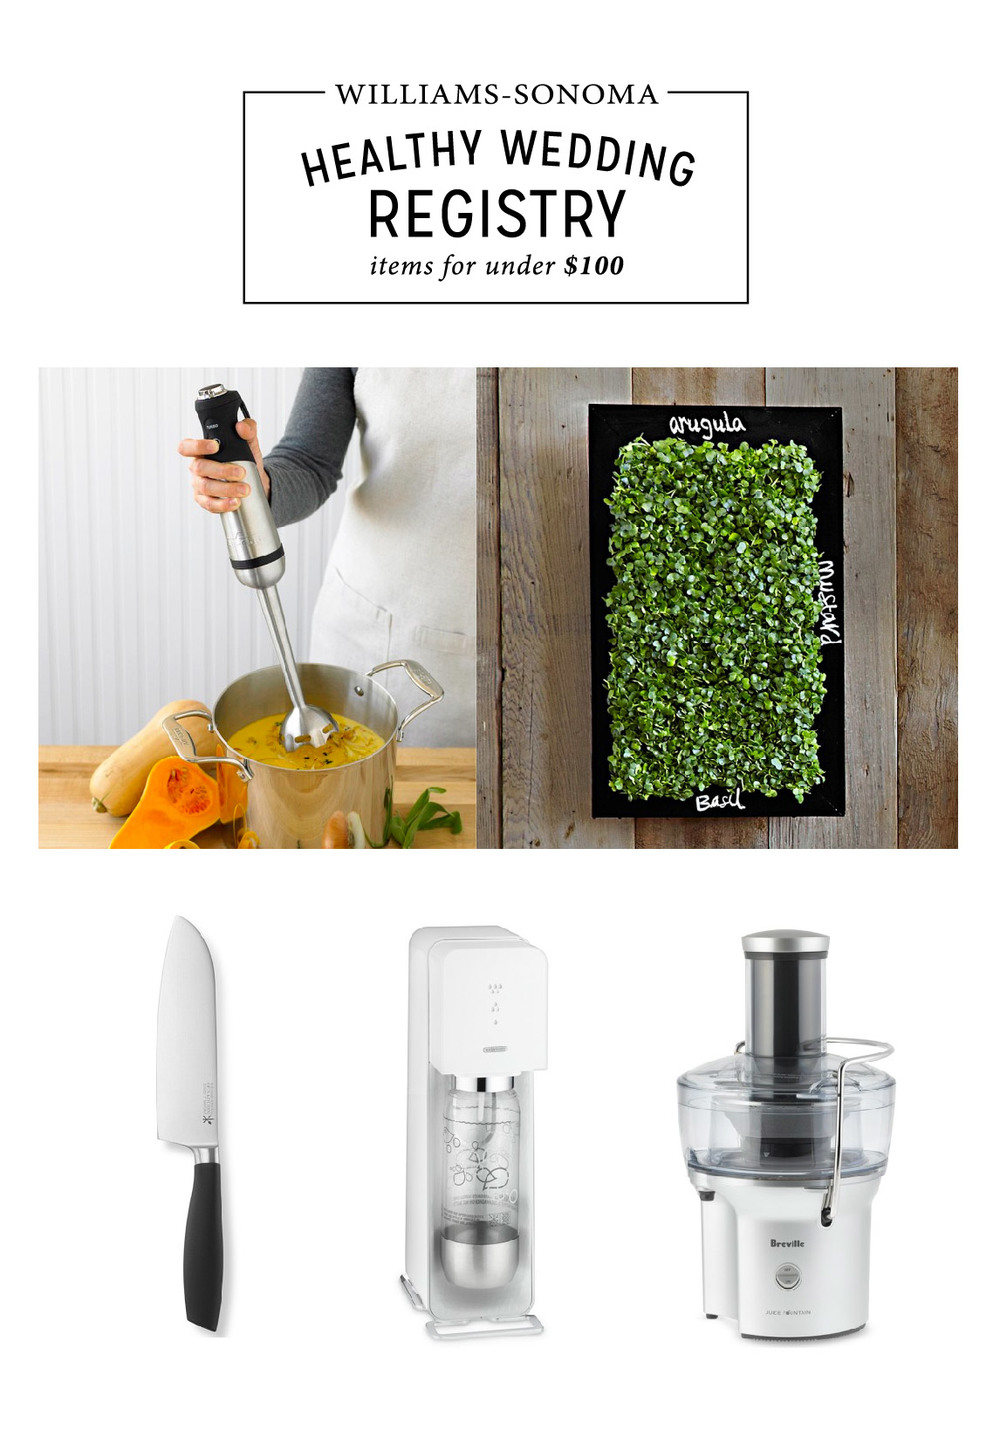 Williams-sonoma wedding registry, healthy kitchen items under 100: Enter to win $5000 to WS!